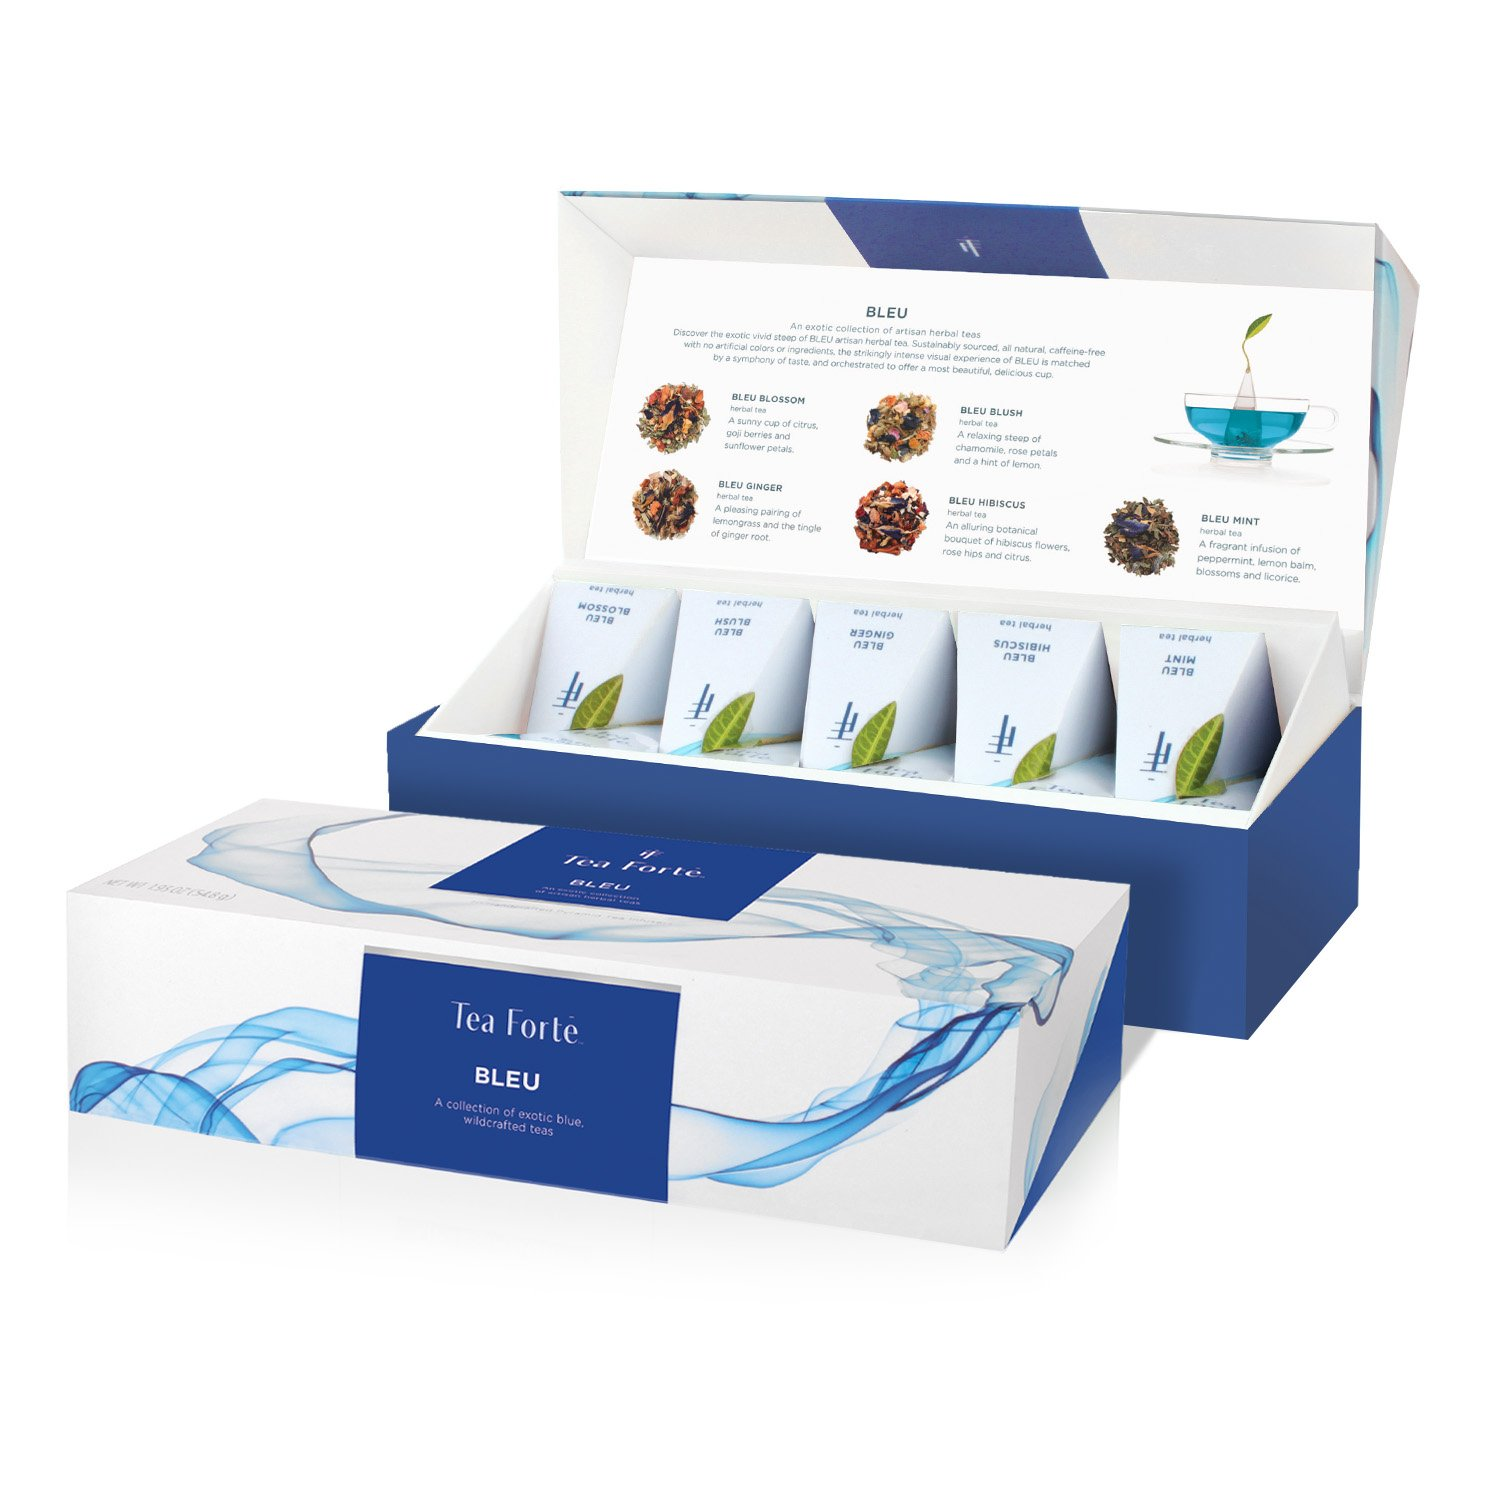 Tea Forté BLEU Petite Presentation Box Tea Sampler, Assorted Variety Tea Box, 10 Handcrafted Pyramid Tea Infuser Bags – Blue Herbal Tea by Tea Forte